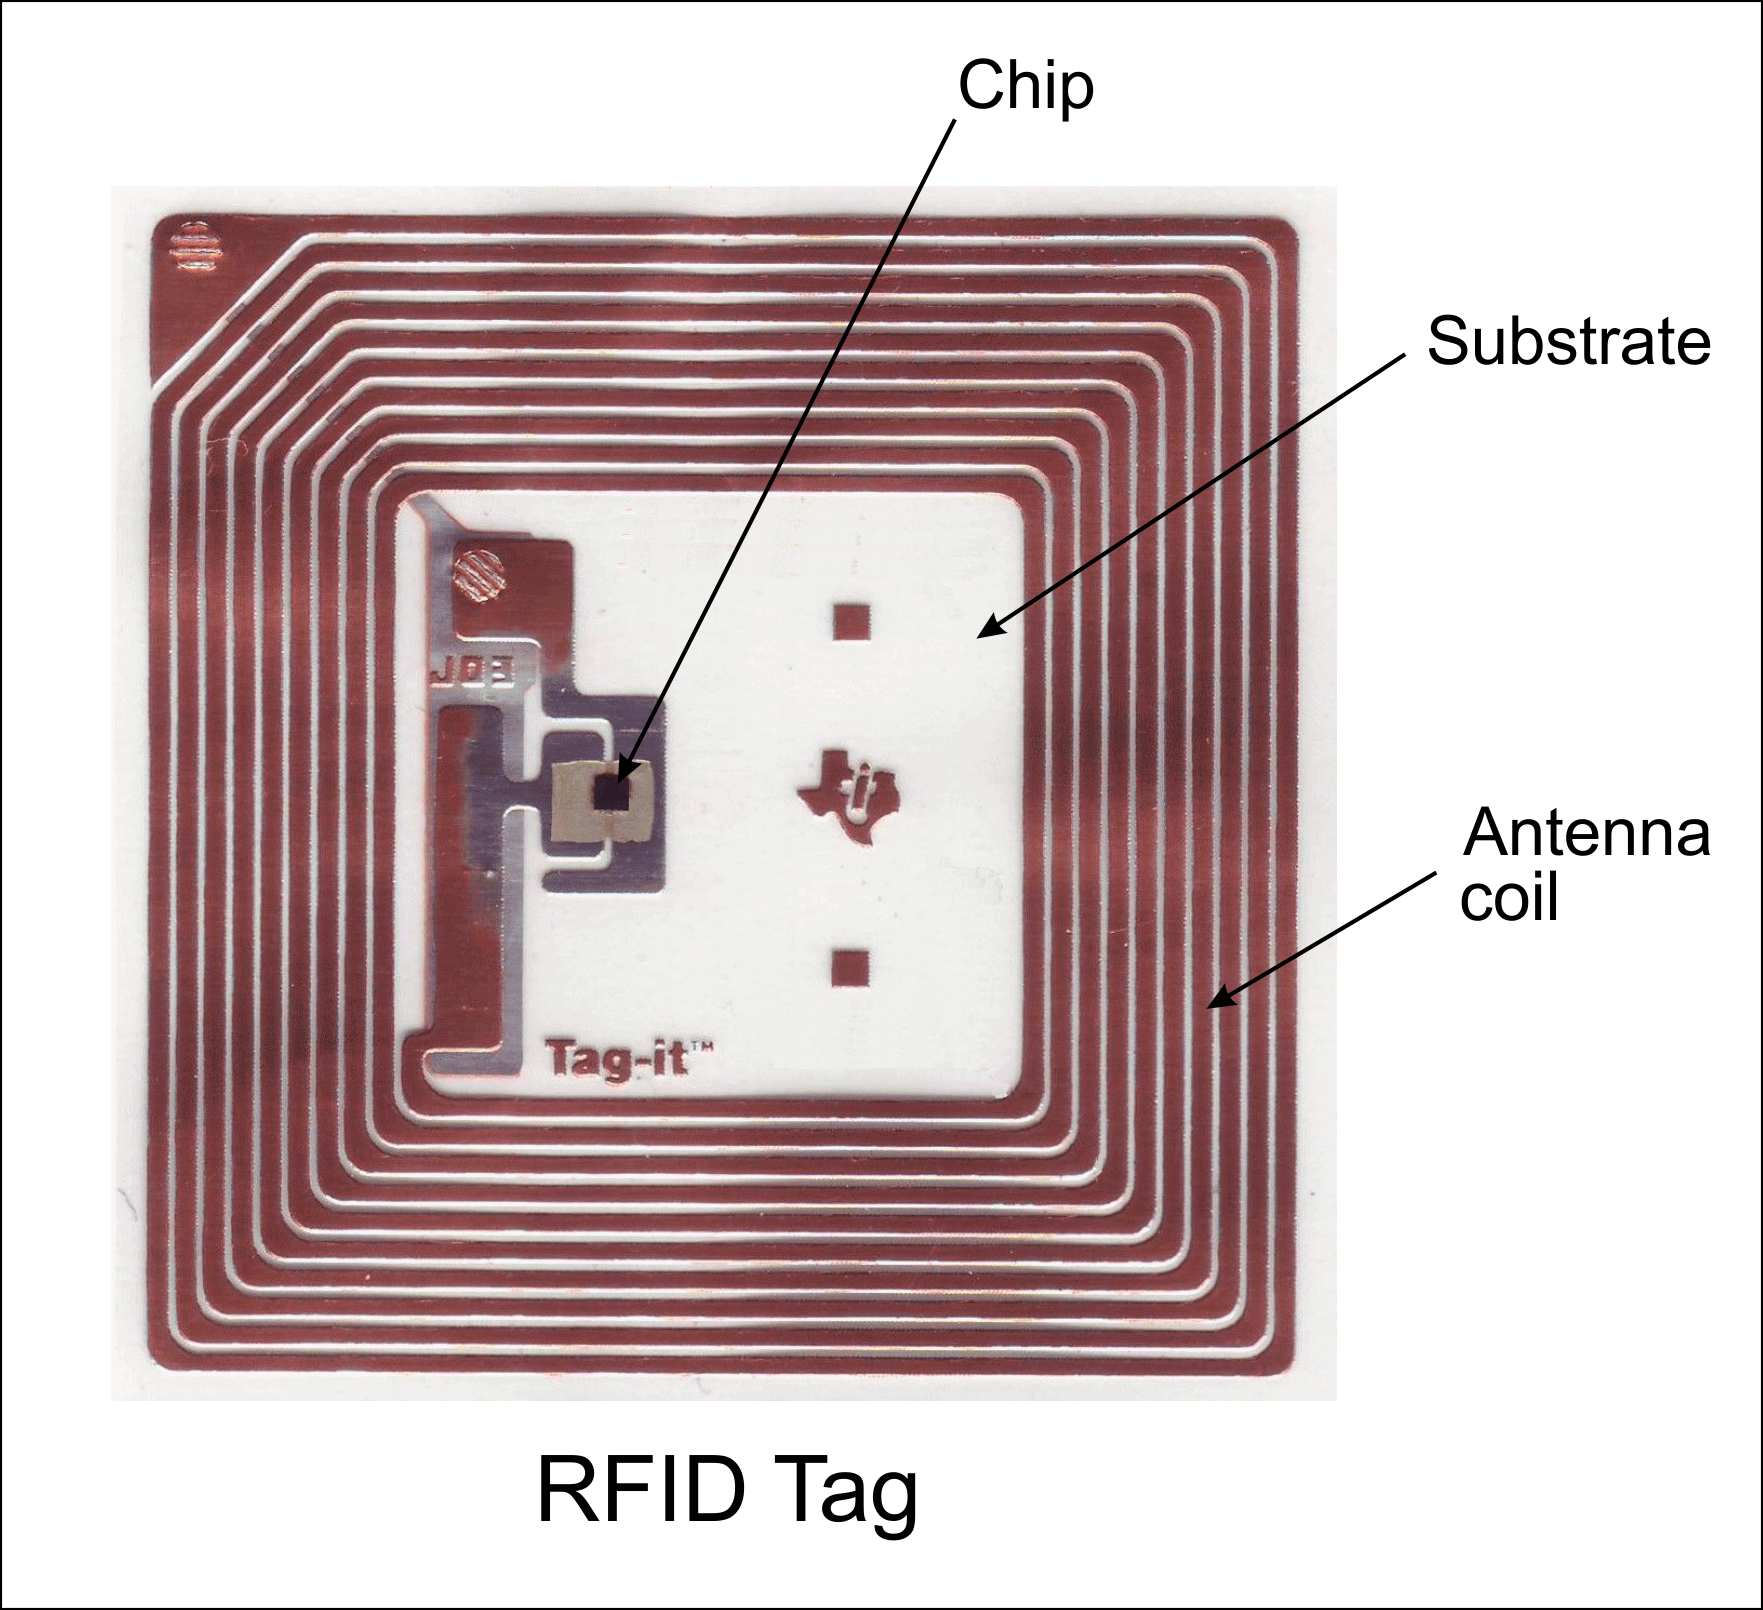 Rfid Sensor additionally 4558D Datasheet PDF JRC in addition Rfid besides Contract 20clipart together with Wearable Implants For The Daring And For Those In Need. on tracking device chip